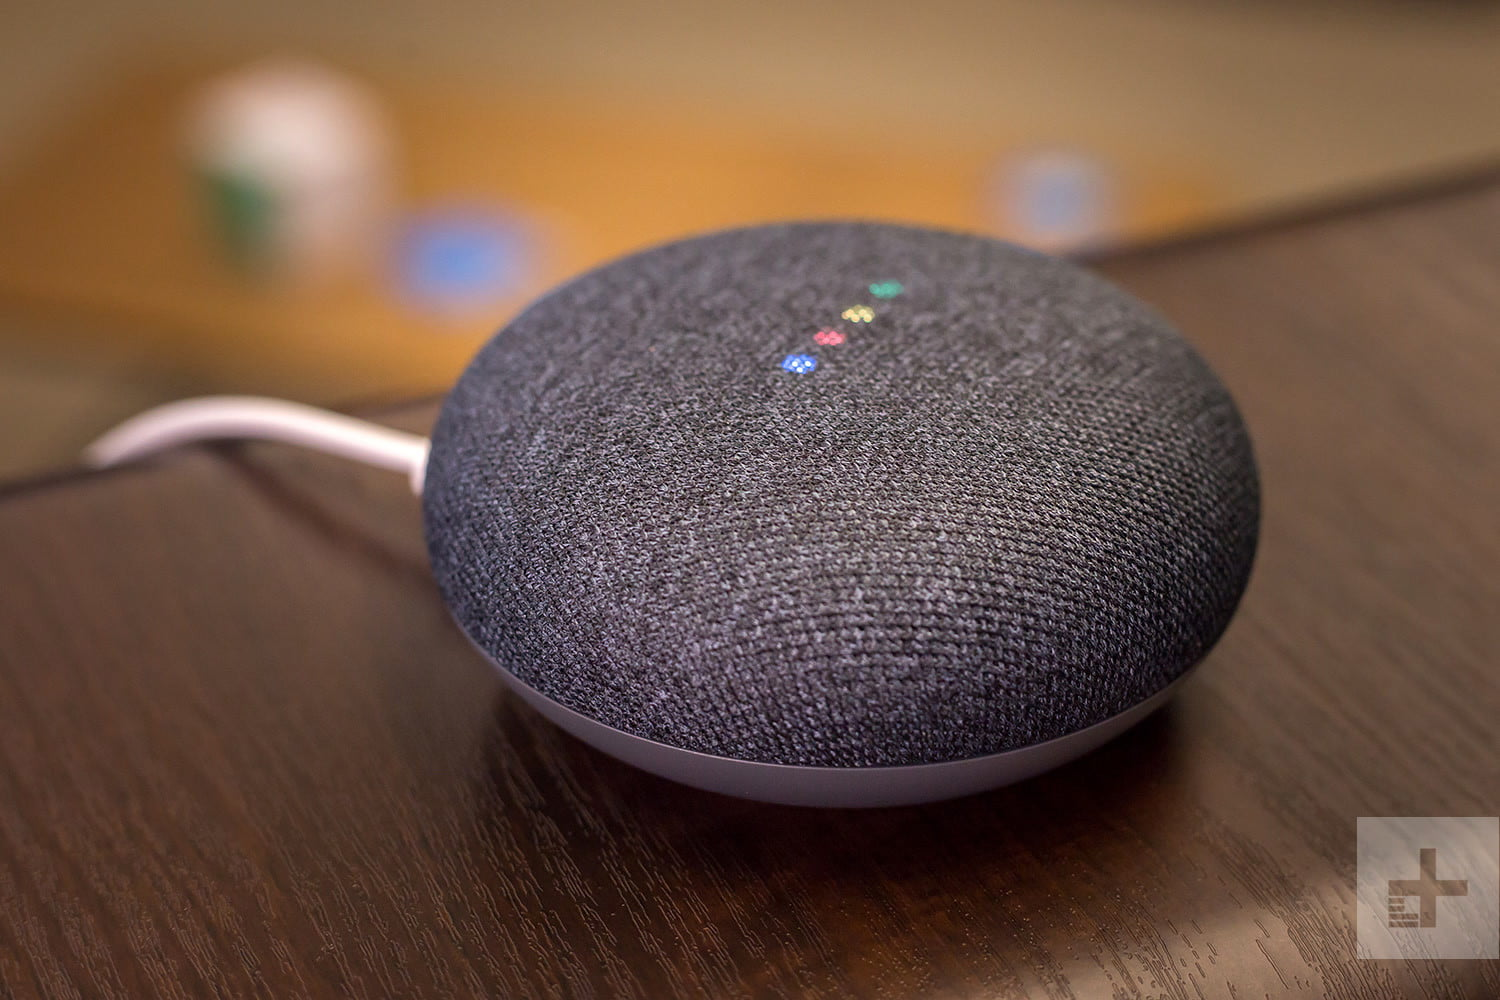 Google Home Mini Vs Amazon Echo Dot Audio Output